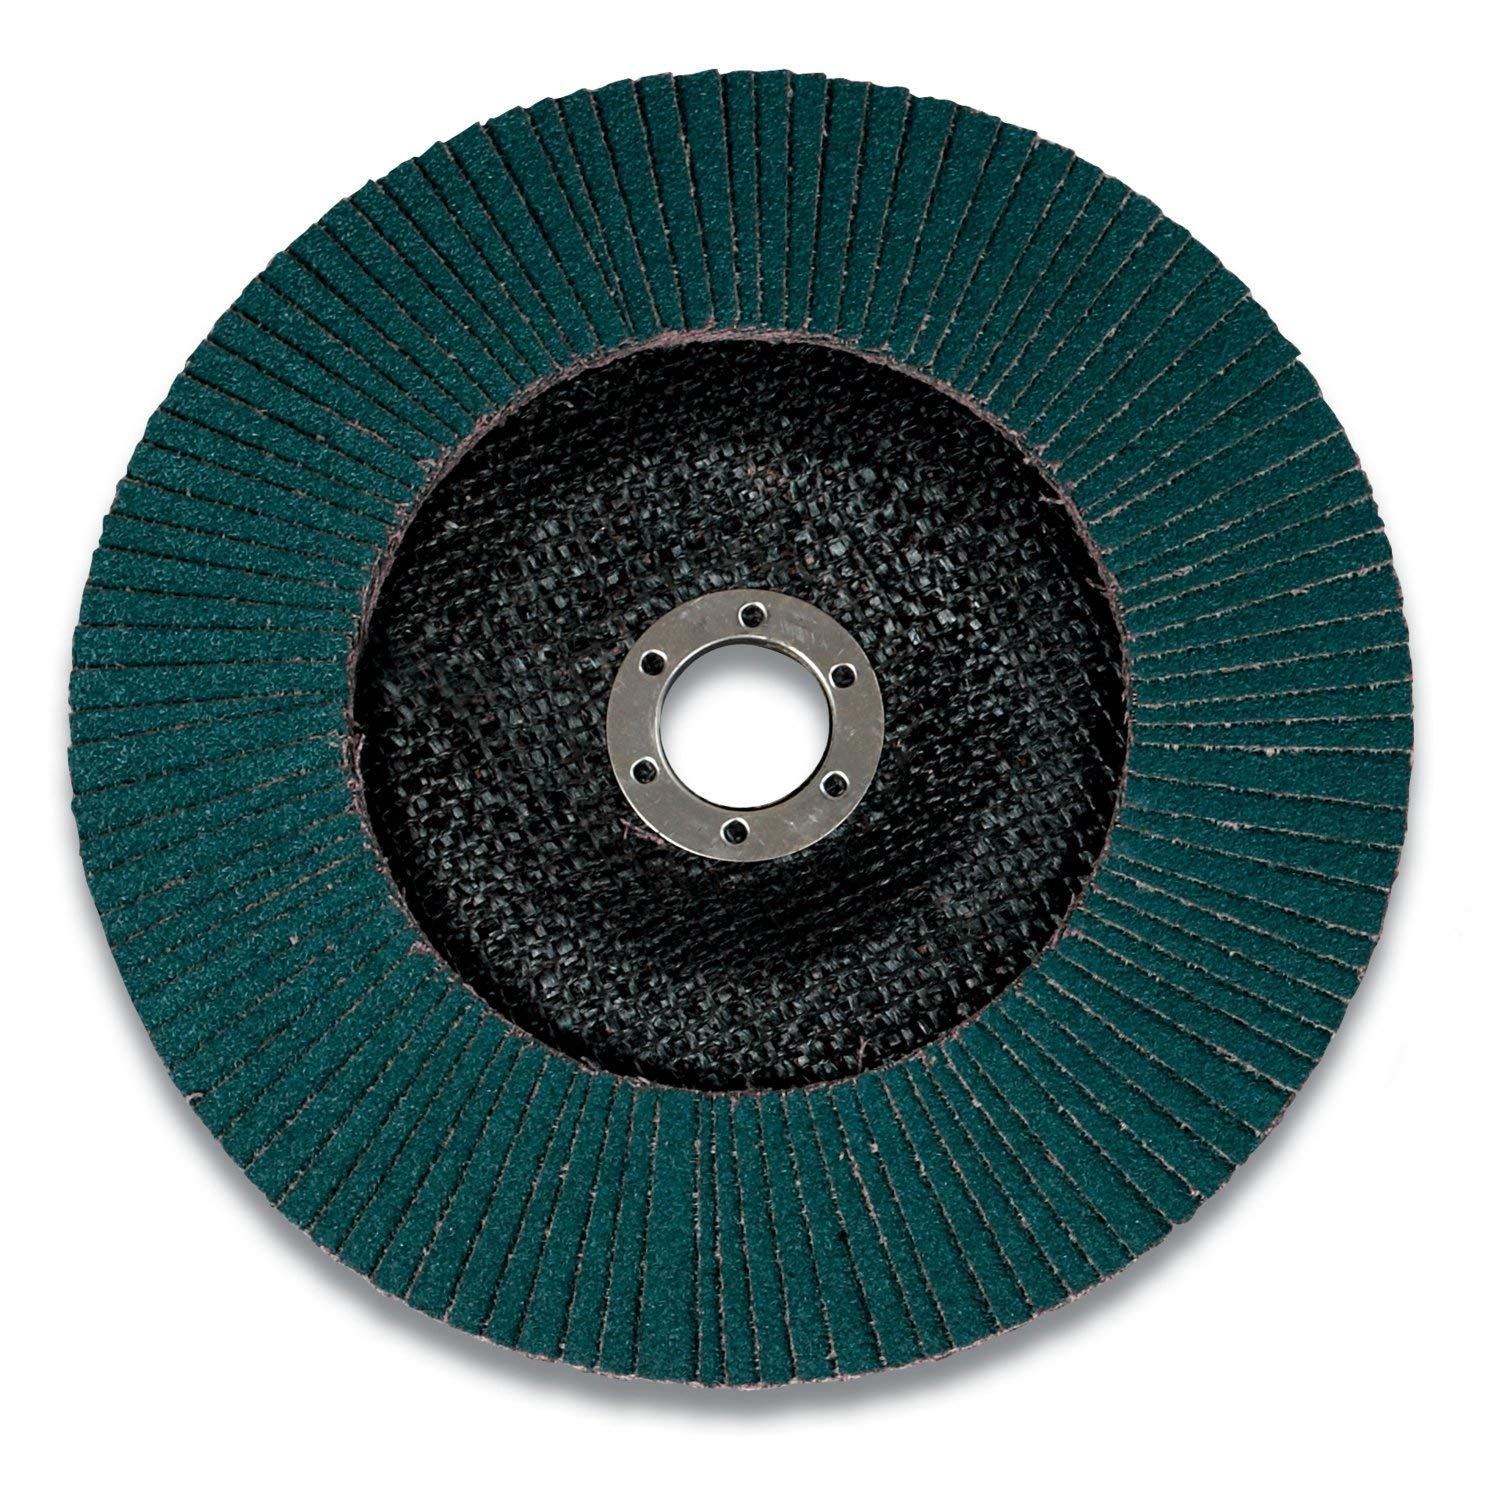 Abrasive Grit T27 7 x 7//8 in 120 X-weight 3M 28917 Flap Disc 546D Cloth Backing T27 7 x 7//8 in 120 X-weight Alumina Zirconia